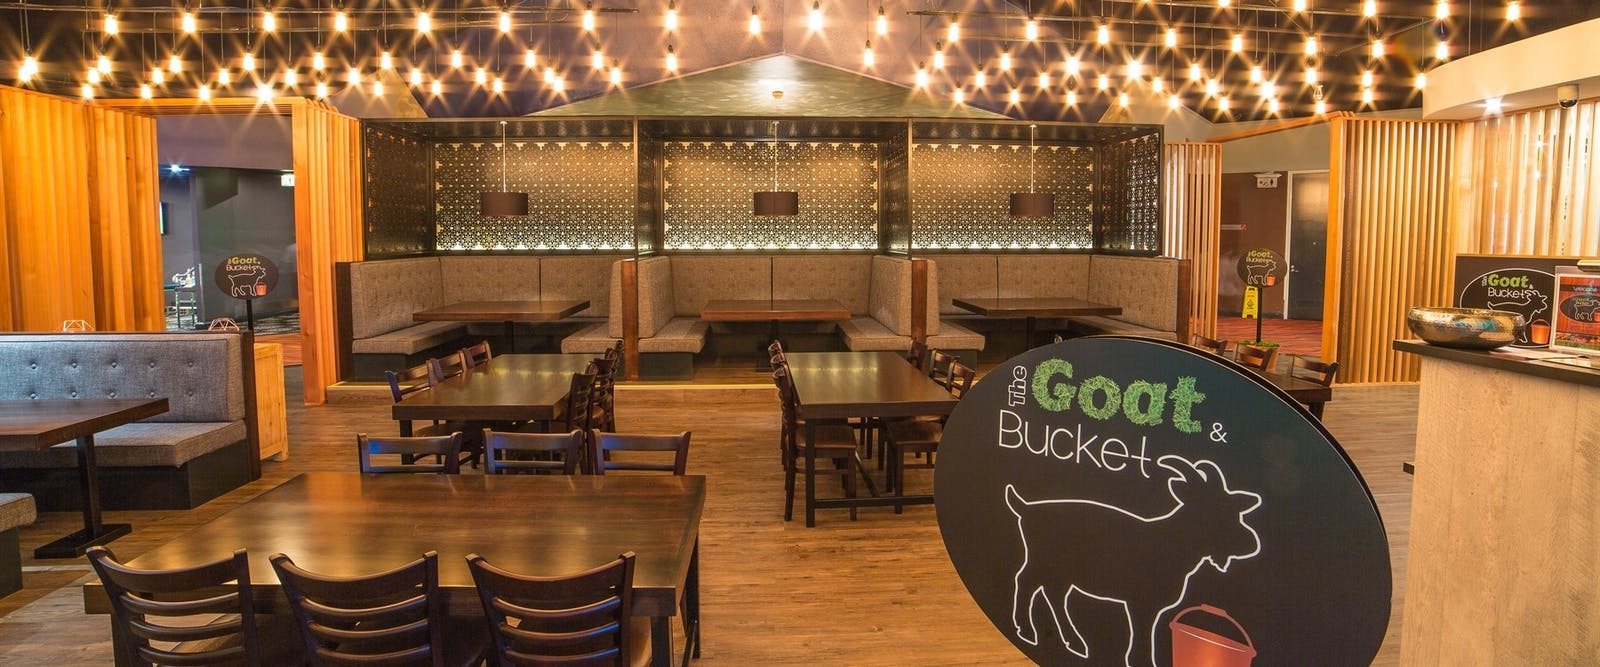 The goat and bucket restaurant at Crowne Plaza Alice Springs Lasseters, Australia